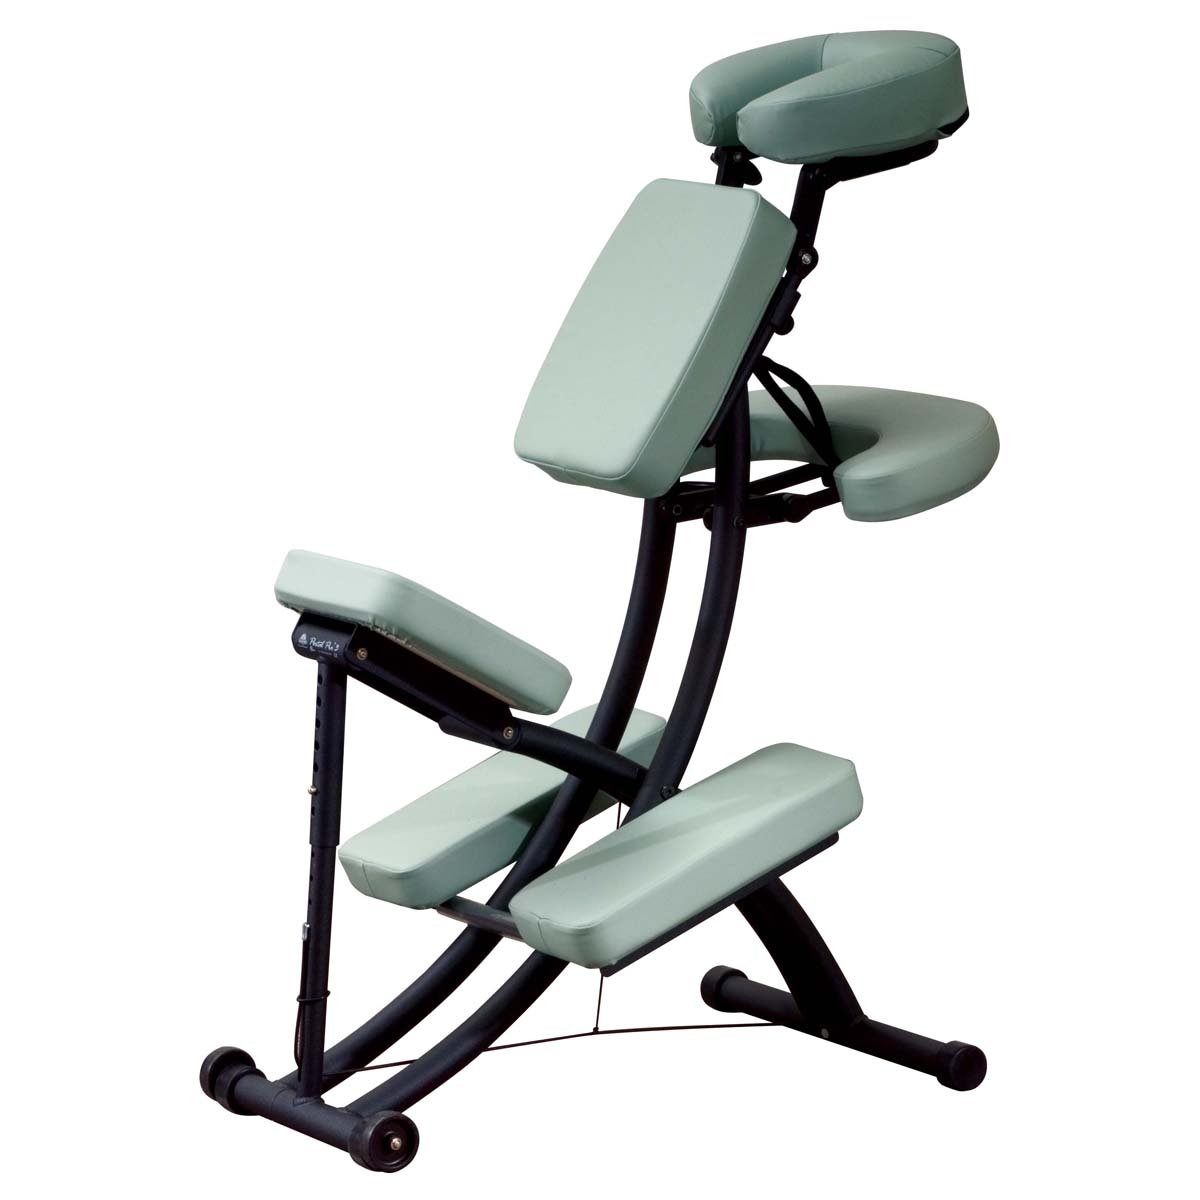 Message Chairs Portal Pro Portable Massage Chair